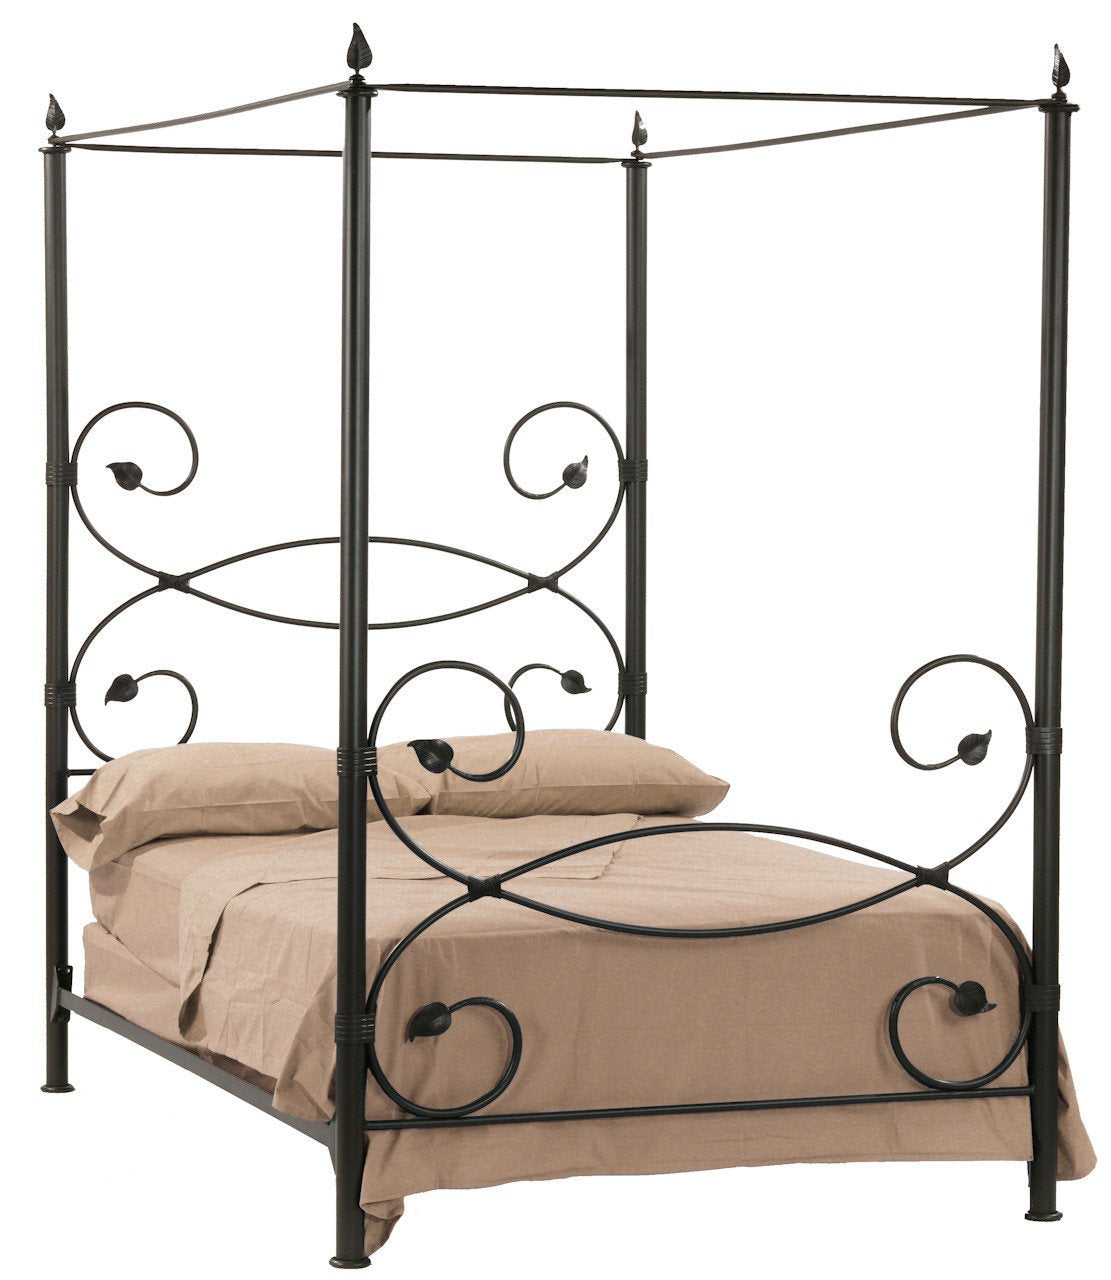 Stone County Canopy California King Bed 998